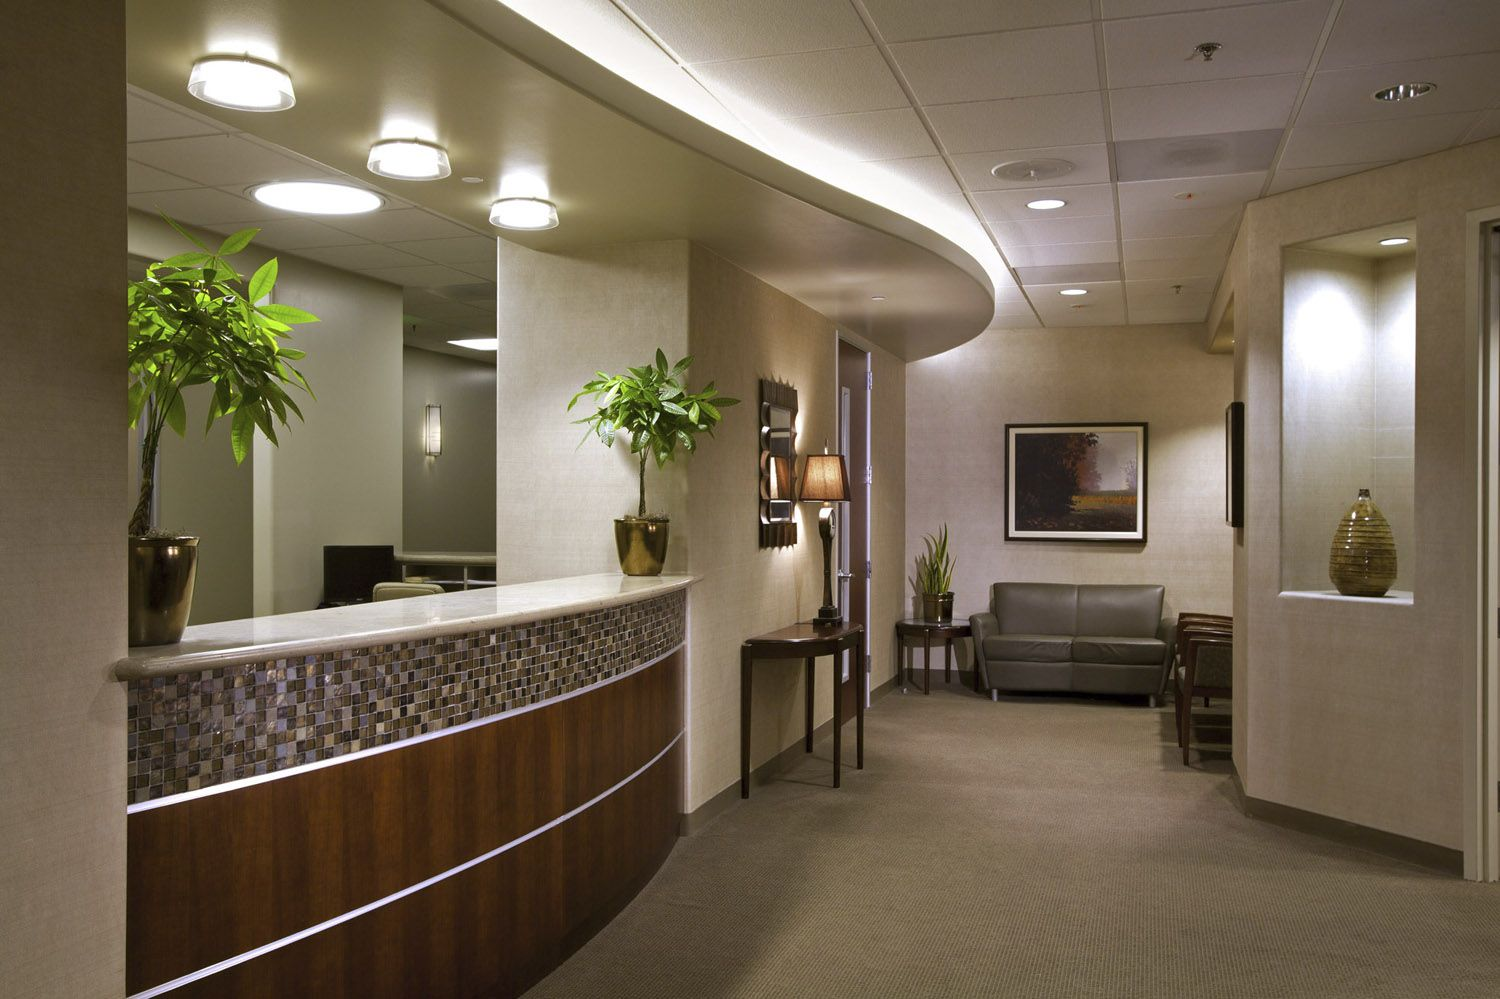 Plastic surgery waiting area | Mission OB-GYN ...